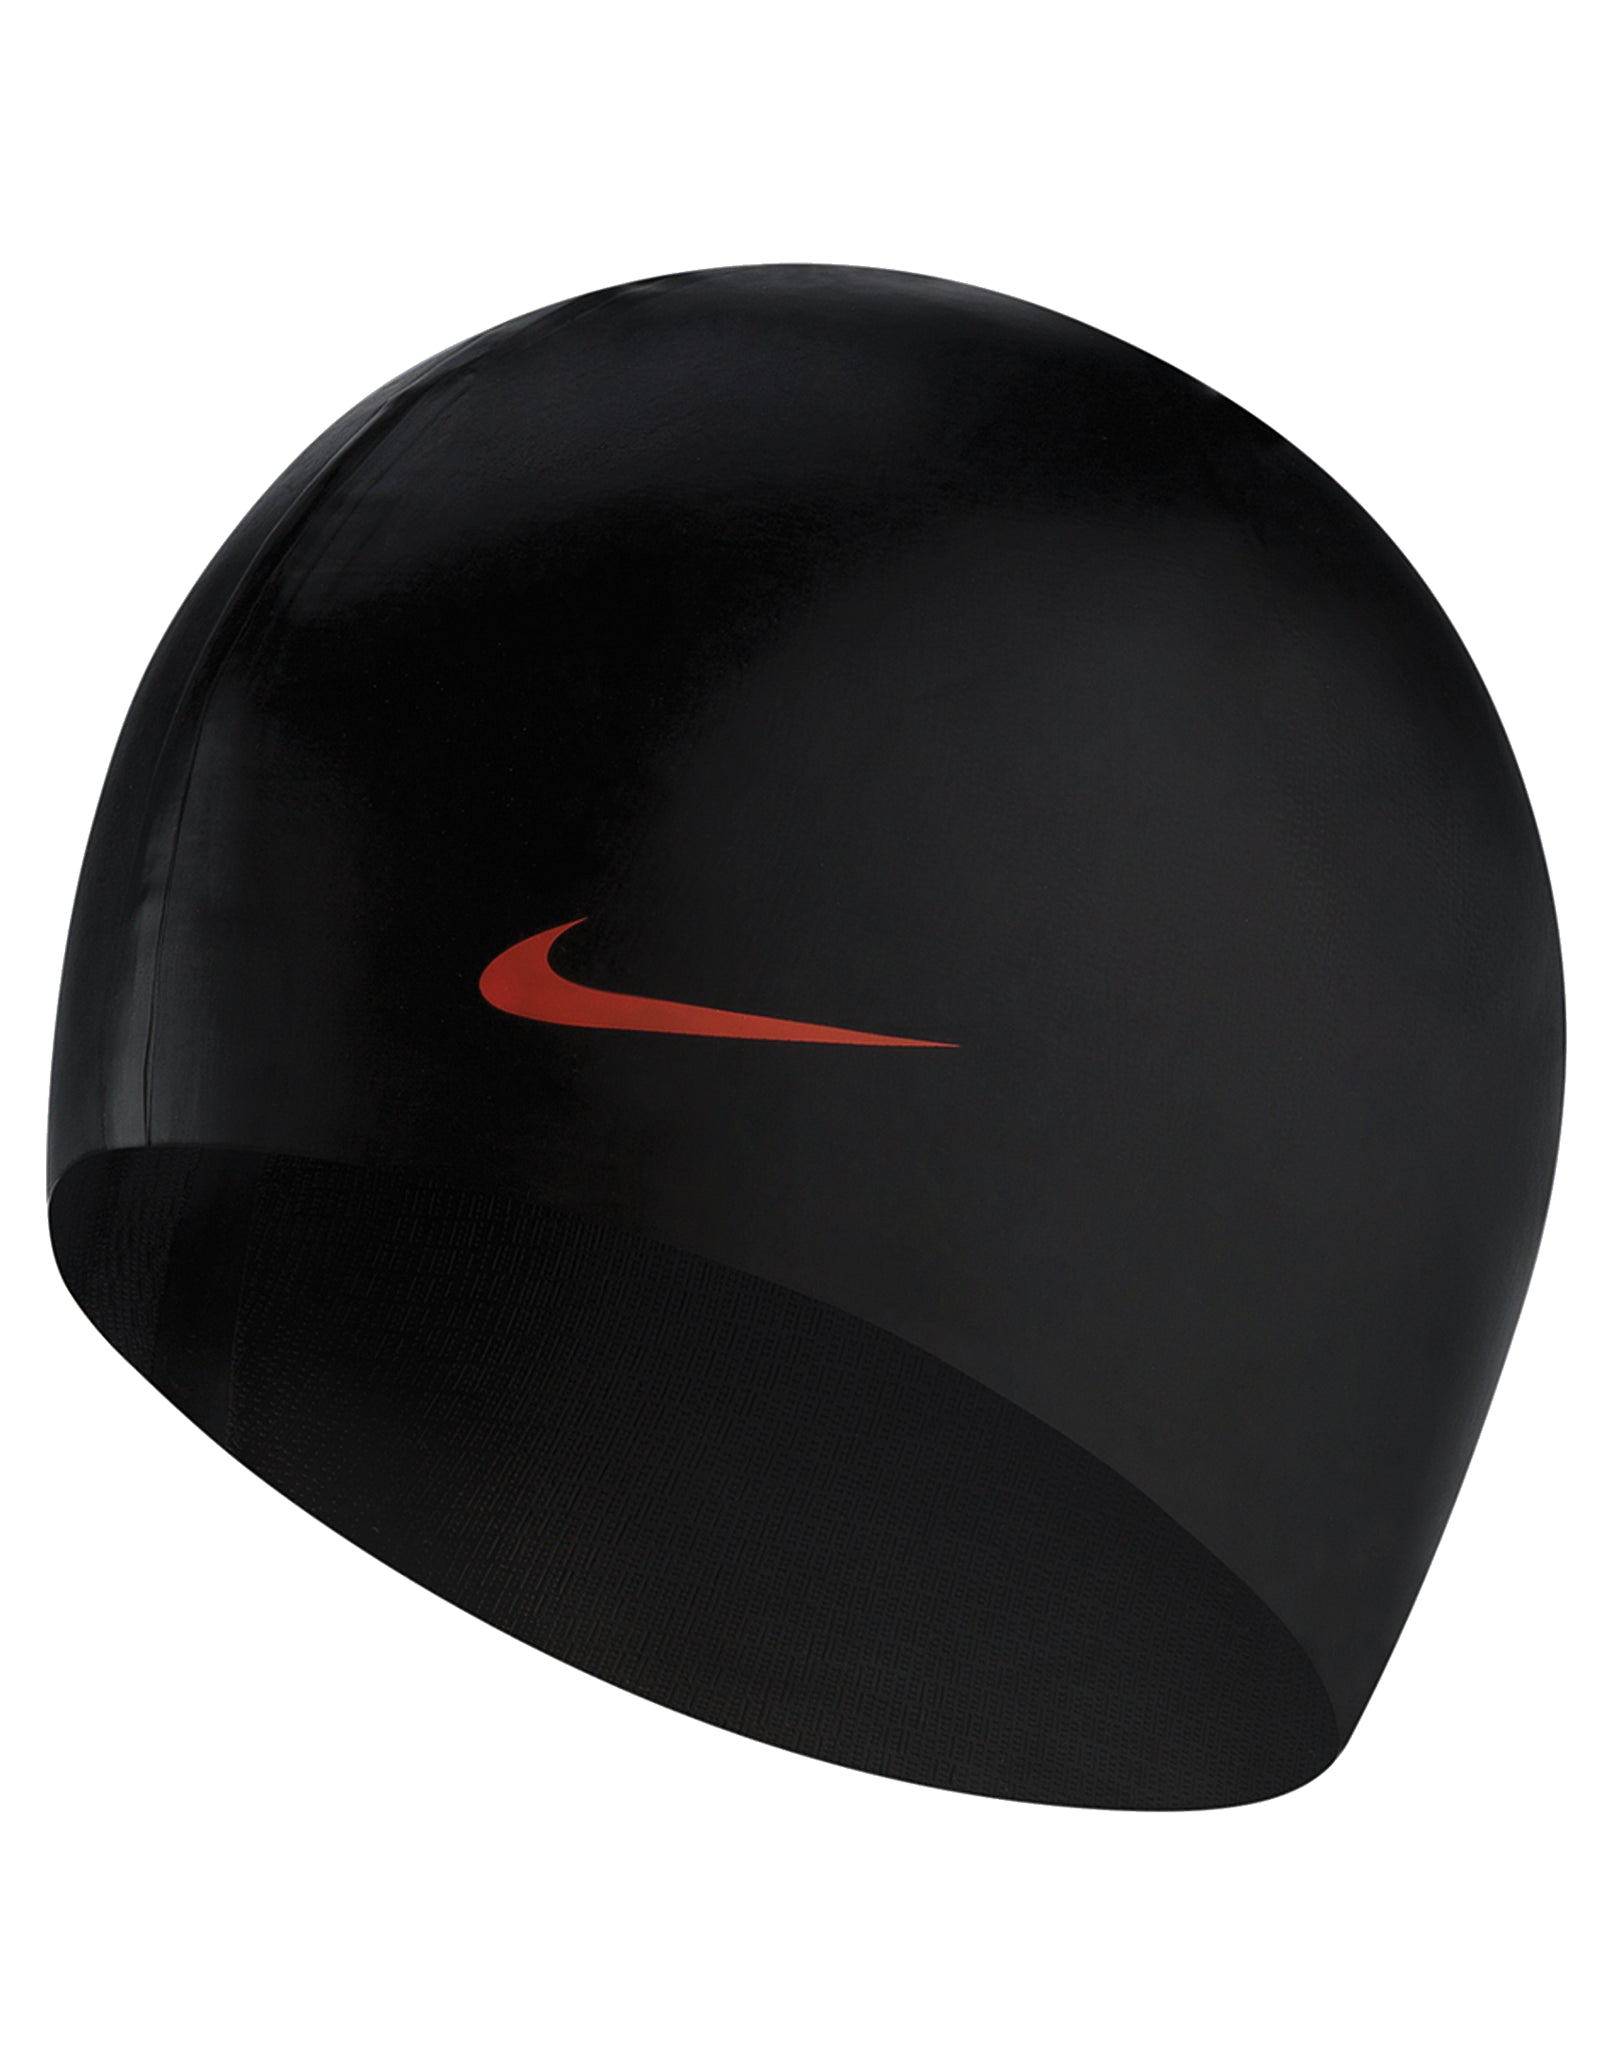 bf180e0213c ... Nike Solid Silicone Cap - Black/Red ...